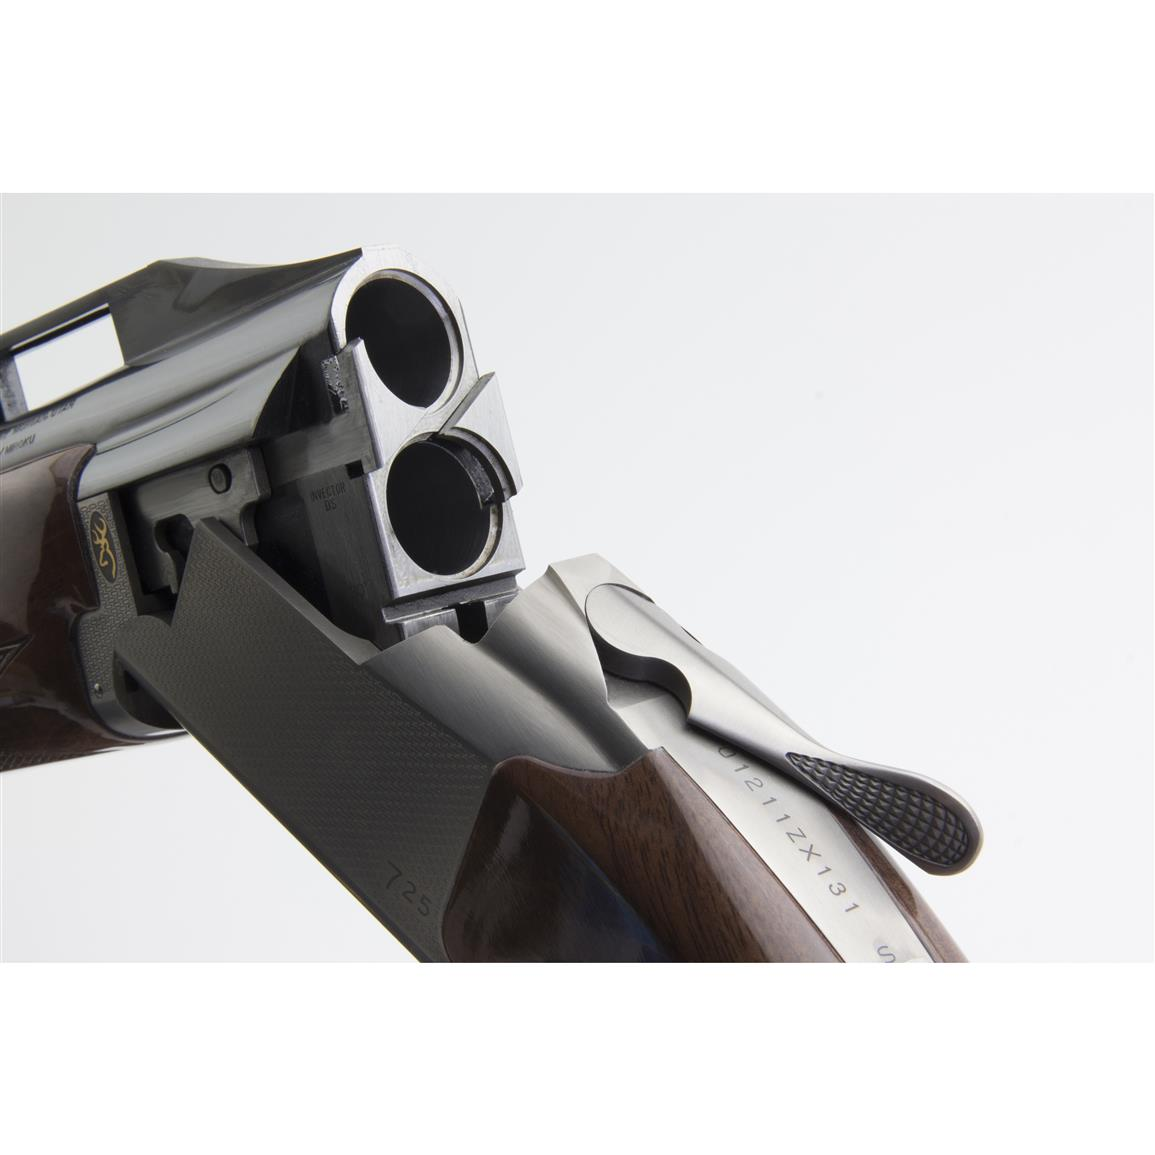 Barrel porting assists the shooter by reducing muzzle jump, enabling consistent sight plain and quick follow-up shots